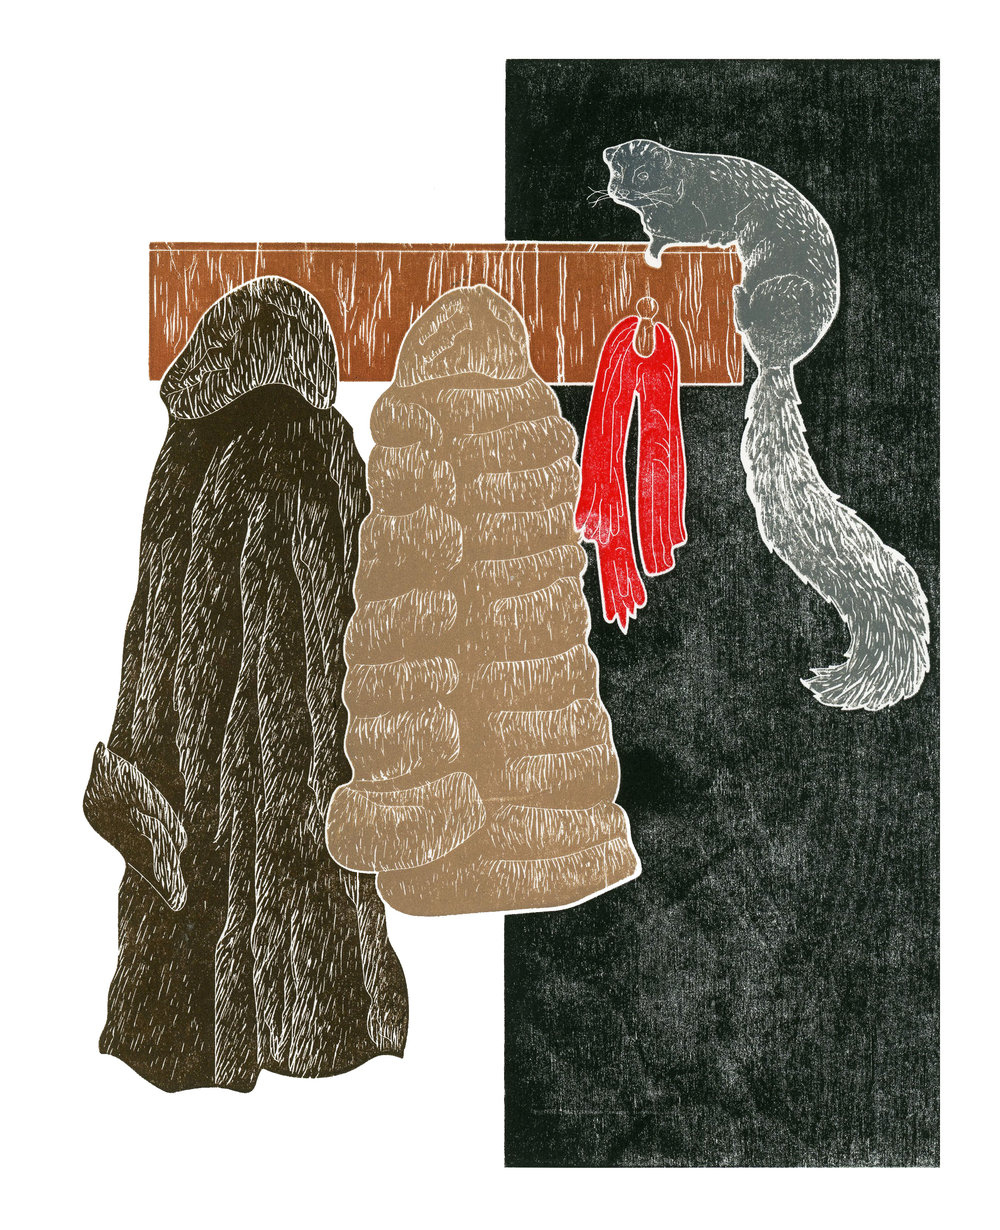 101 Minks  by Yeisy Rodriguez is a woodcut that features two fur coats and a mink. The fashion industry is moving away from the use real fur but the lives of millions of animals are lost every year to the fur industry.